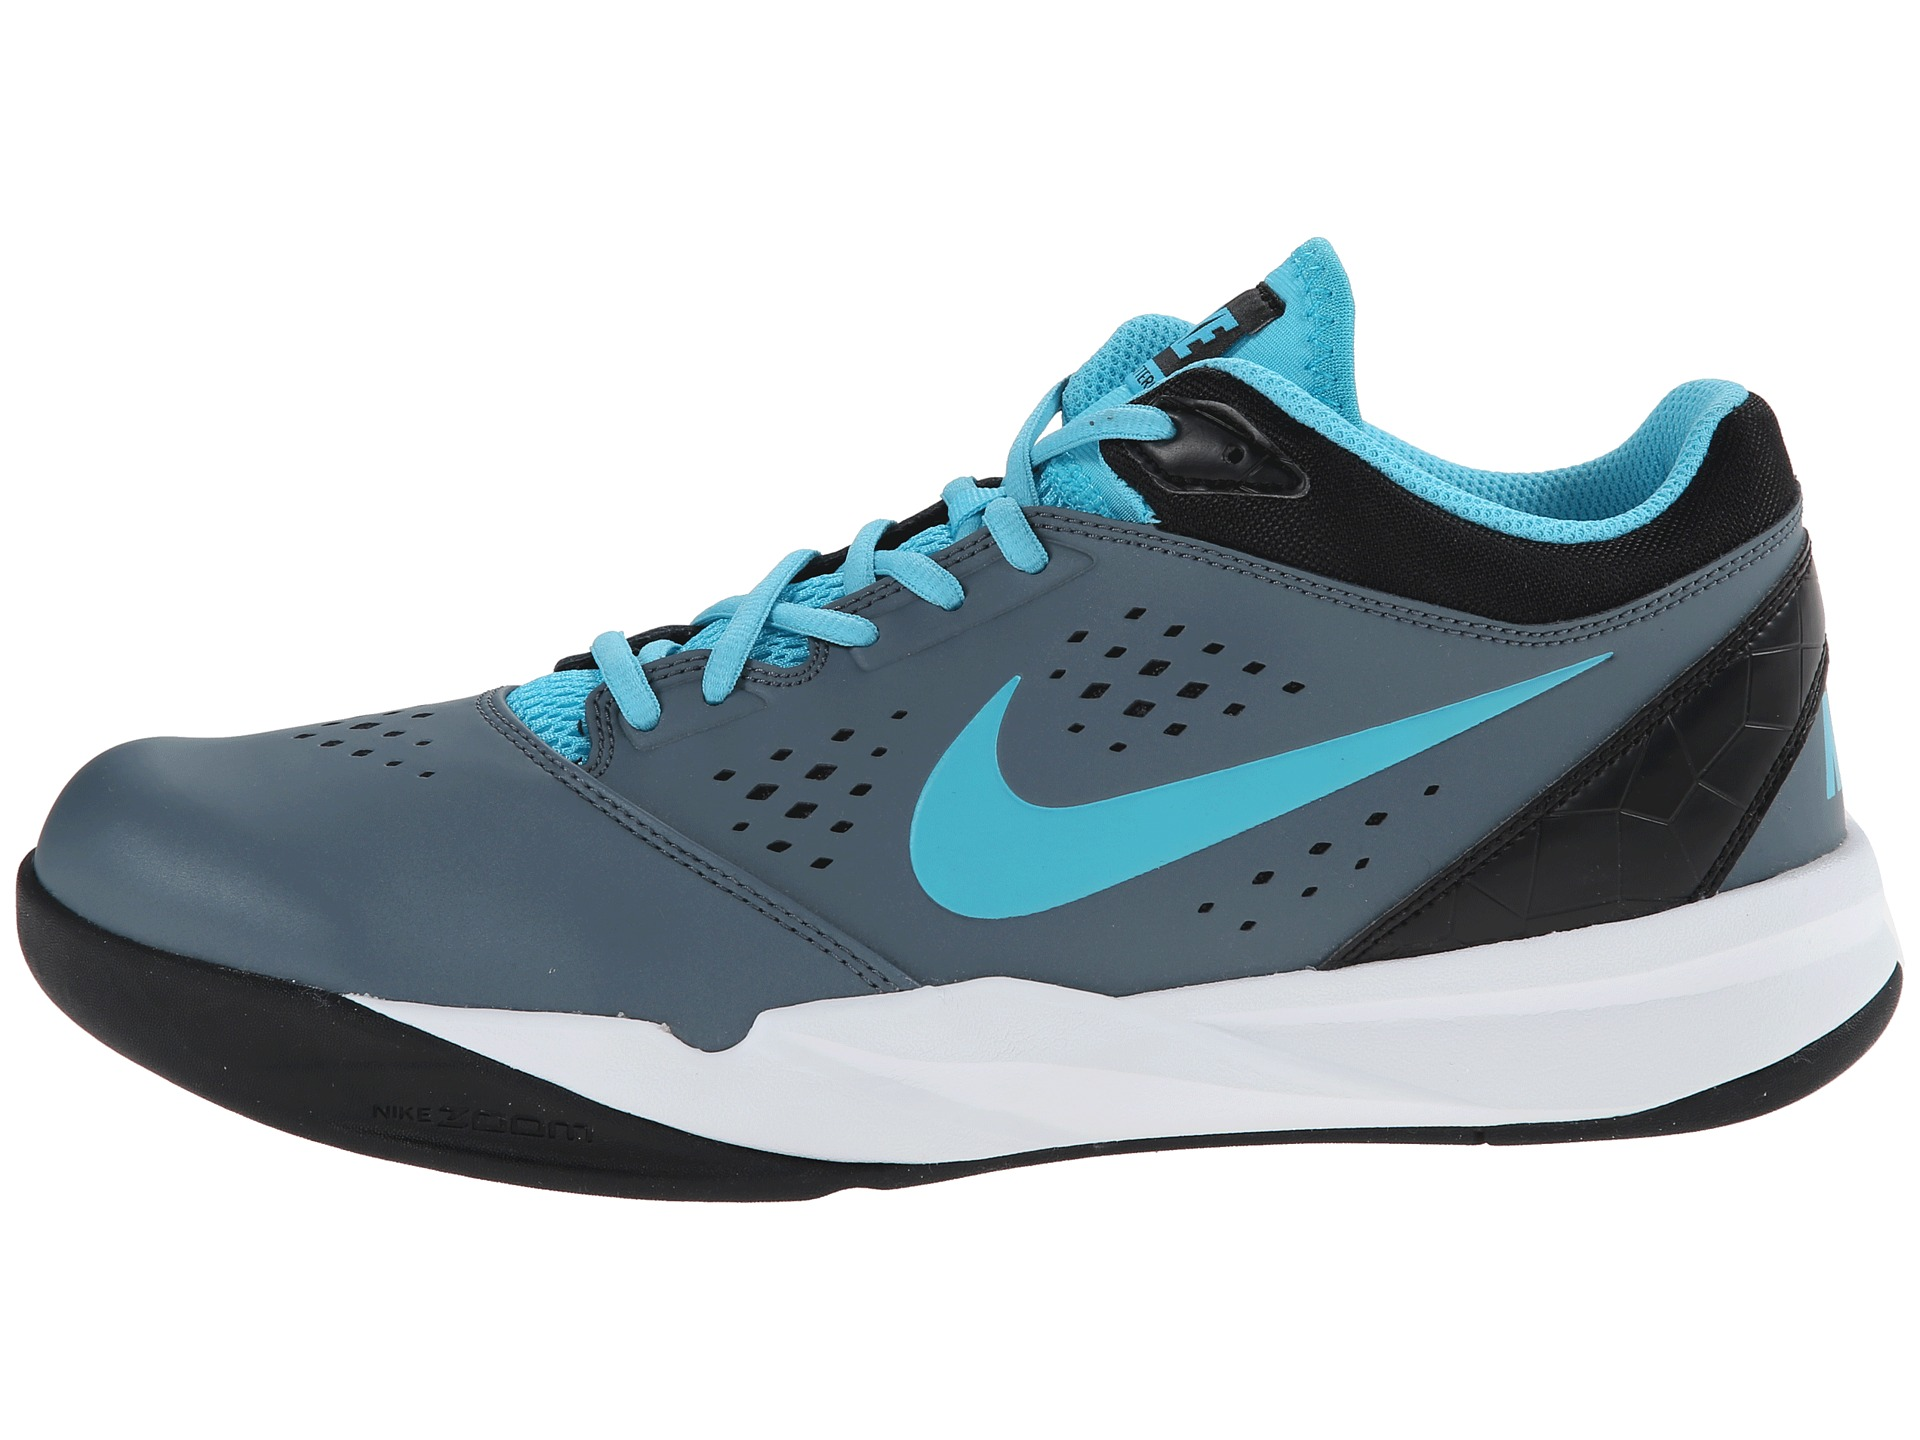 argument of evaluation nike shoes Nike is a very competitive organization phil knight (founder and ceo) is often quoted as saying that 'business is war without bullets' nike has a healthy dislike of is competitors.